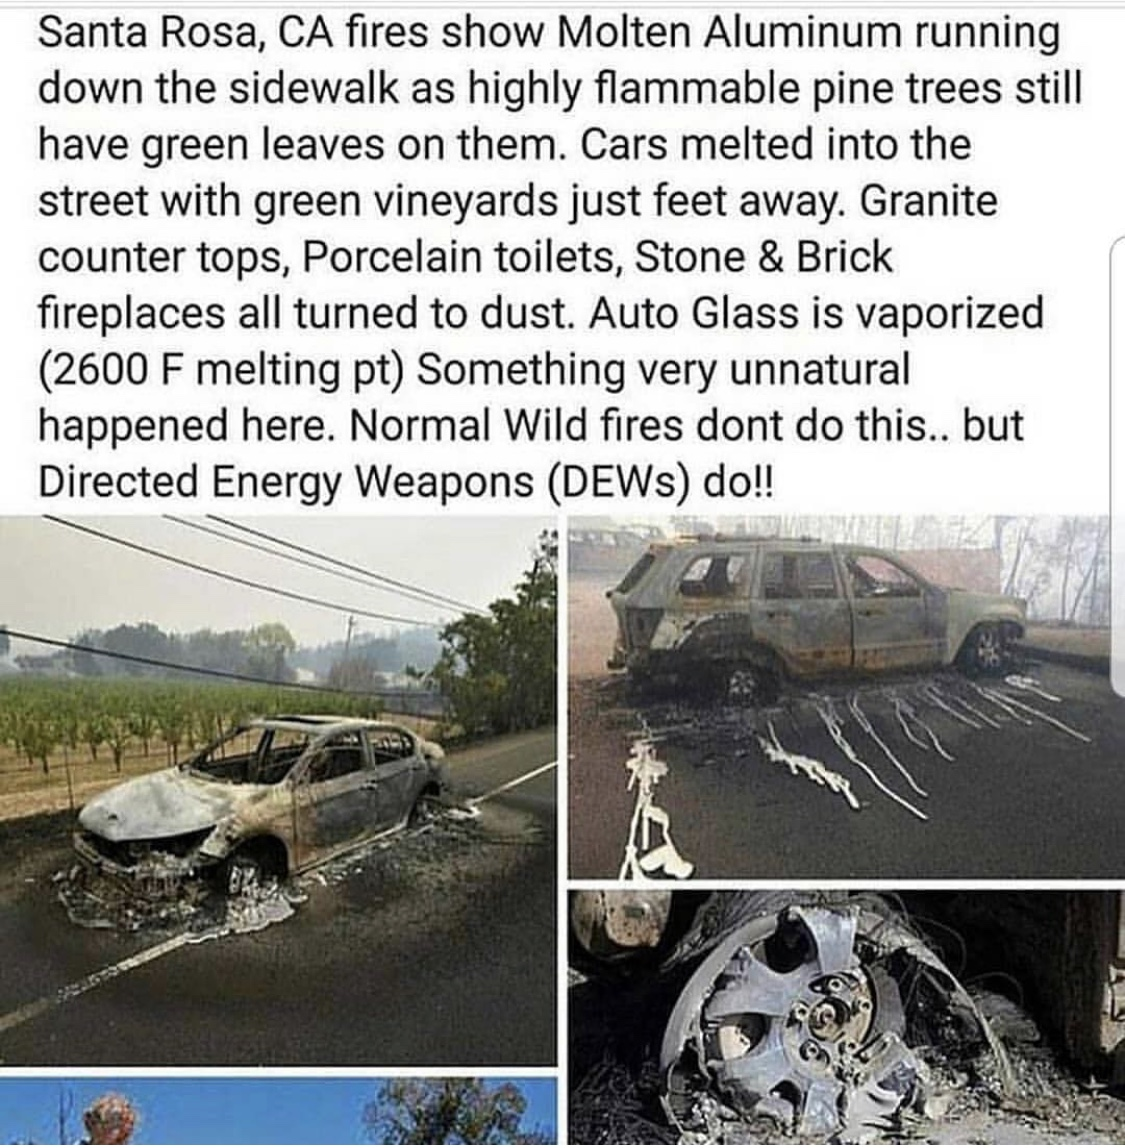 Were The Devastating California Wildfires Caused By Directed